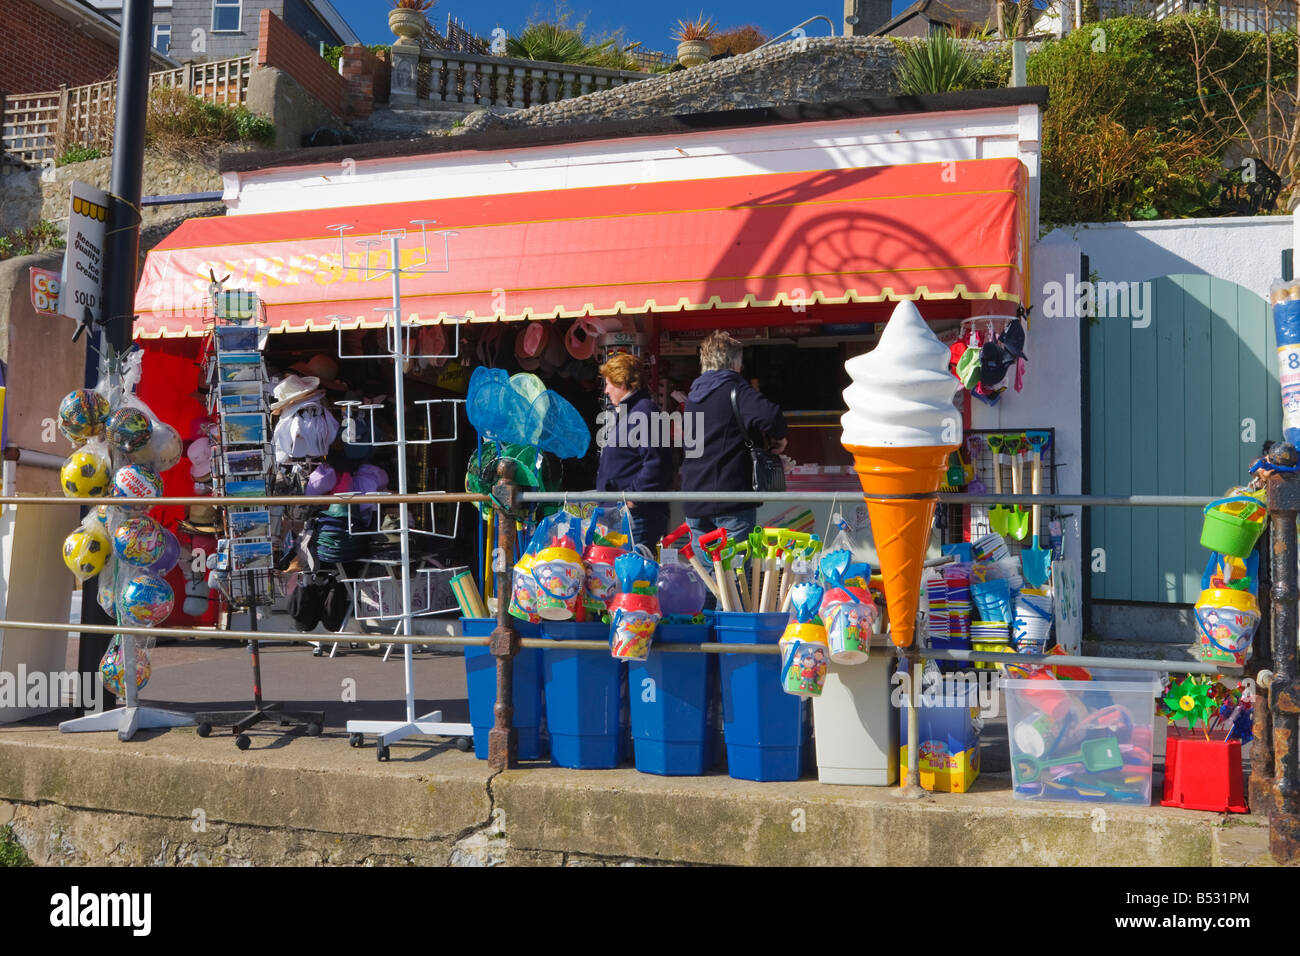 Shop on Lyme Regis Promenade selling a variety of beach Toys and souvenirs and Ice Cream - Stock Image